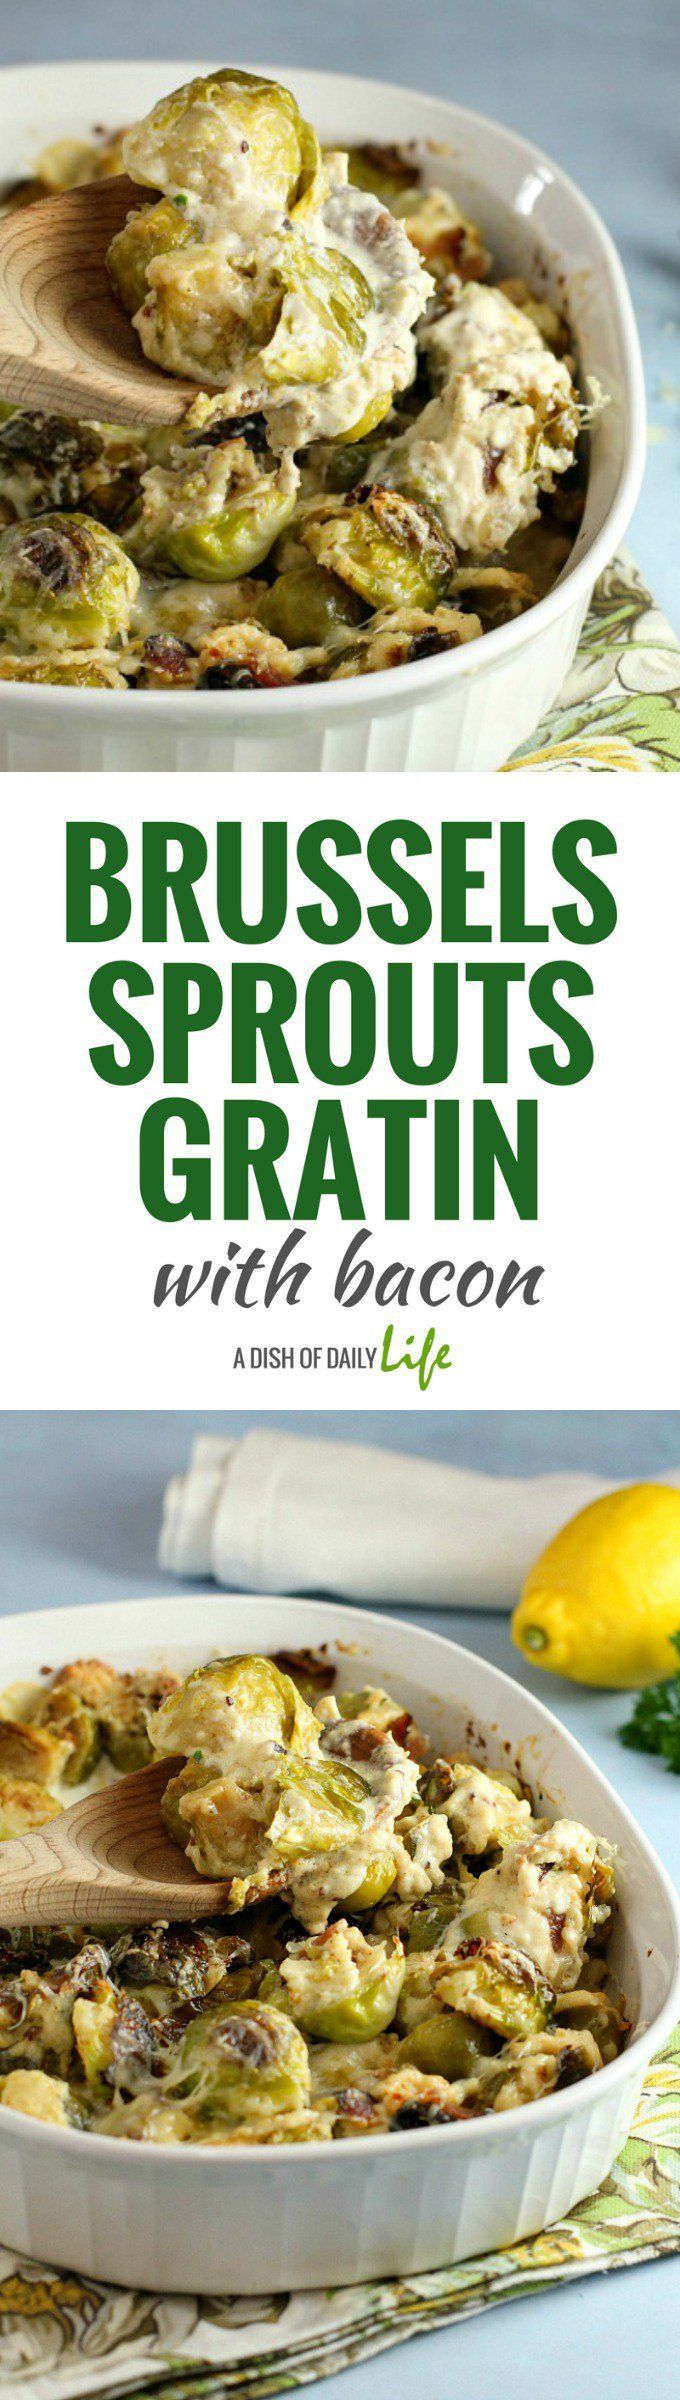 Brussels Sprouts Gratin with bacon...roasted brussels sprouts are paired with a rich cheesy cream sauce, perfect for any holiday occasion! Side dishes | Easter | Thanksgiving | Christmas | Holiday side dishes  #ad @hphood